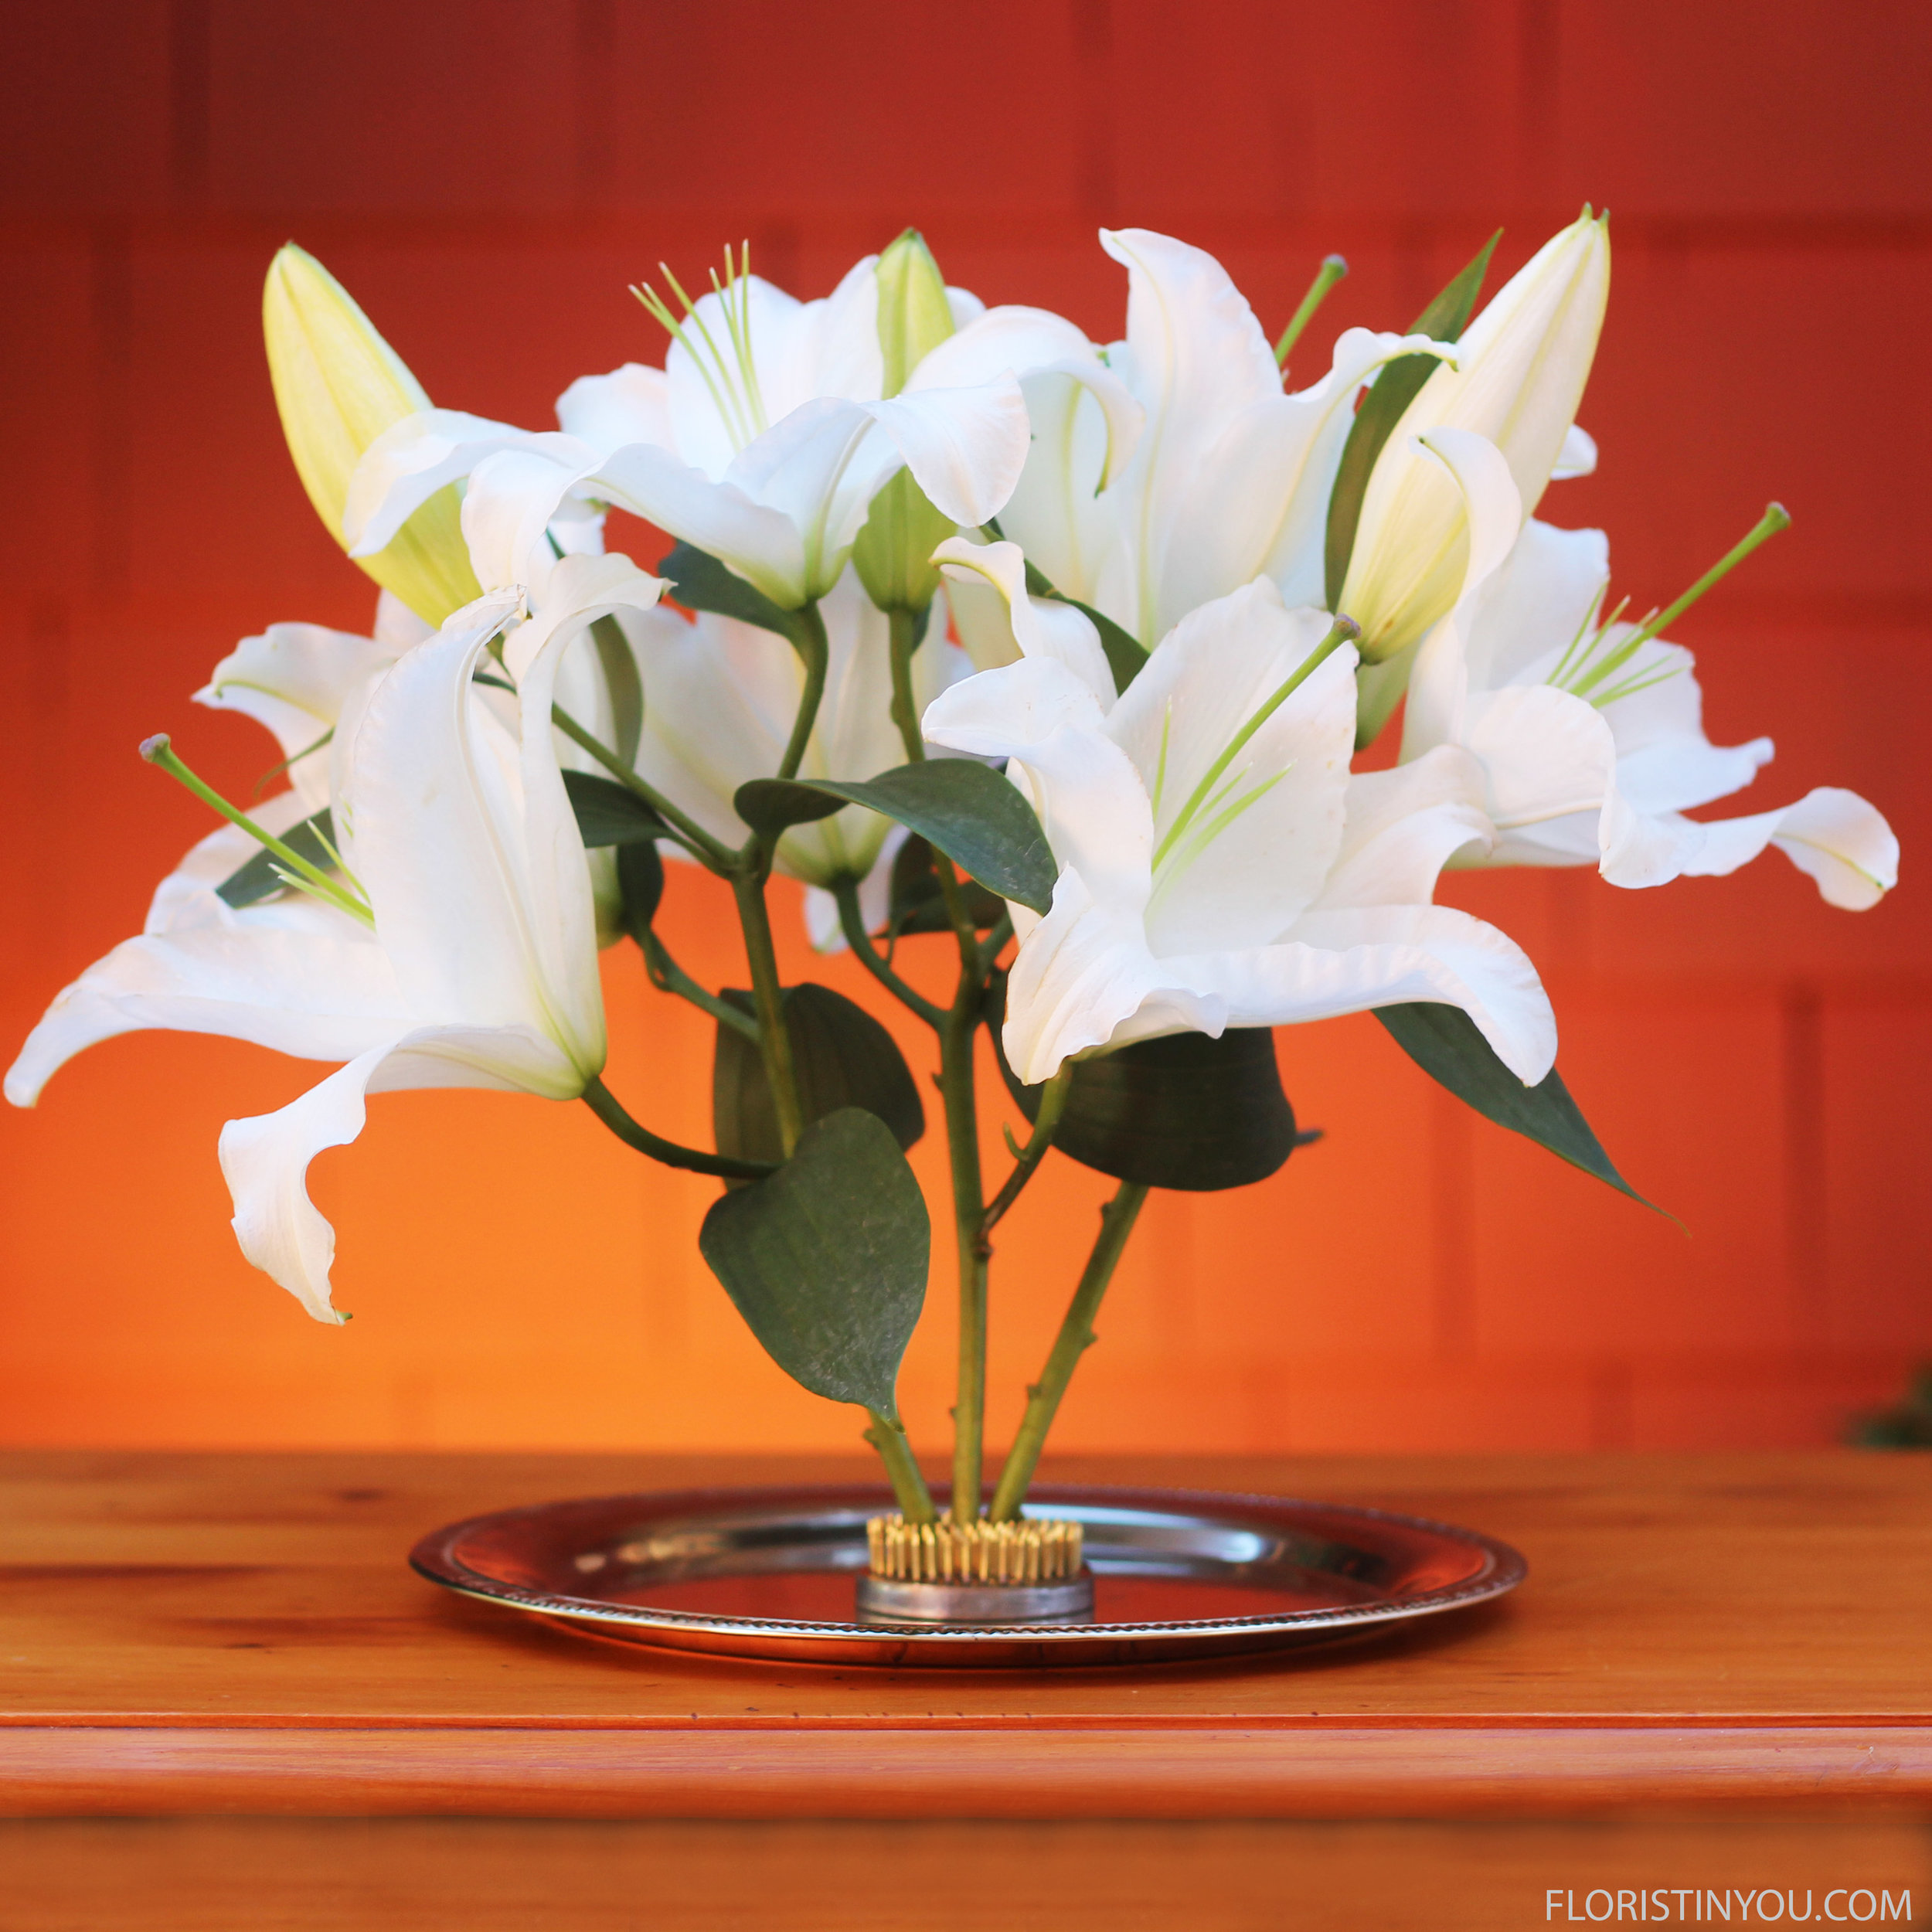 Push stems into floral frog in the way you want them arranged.